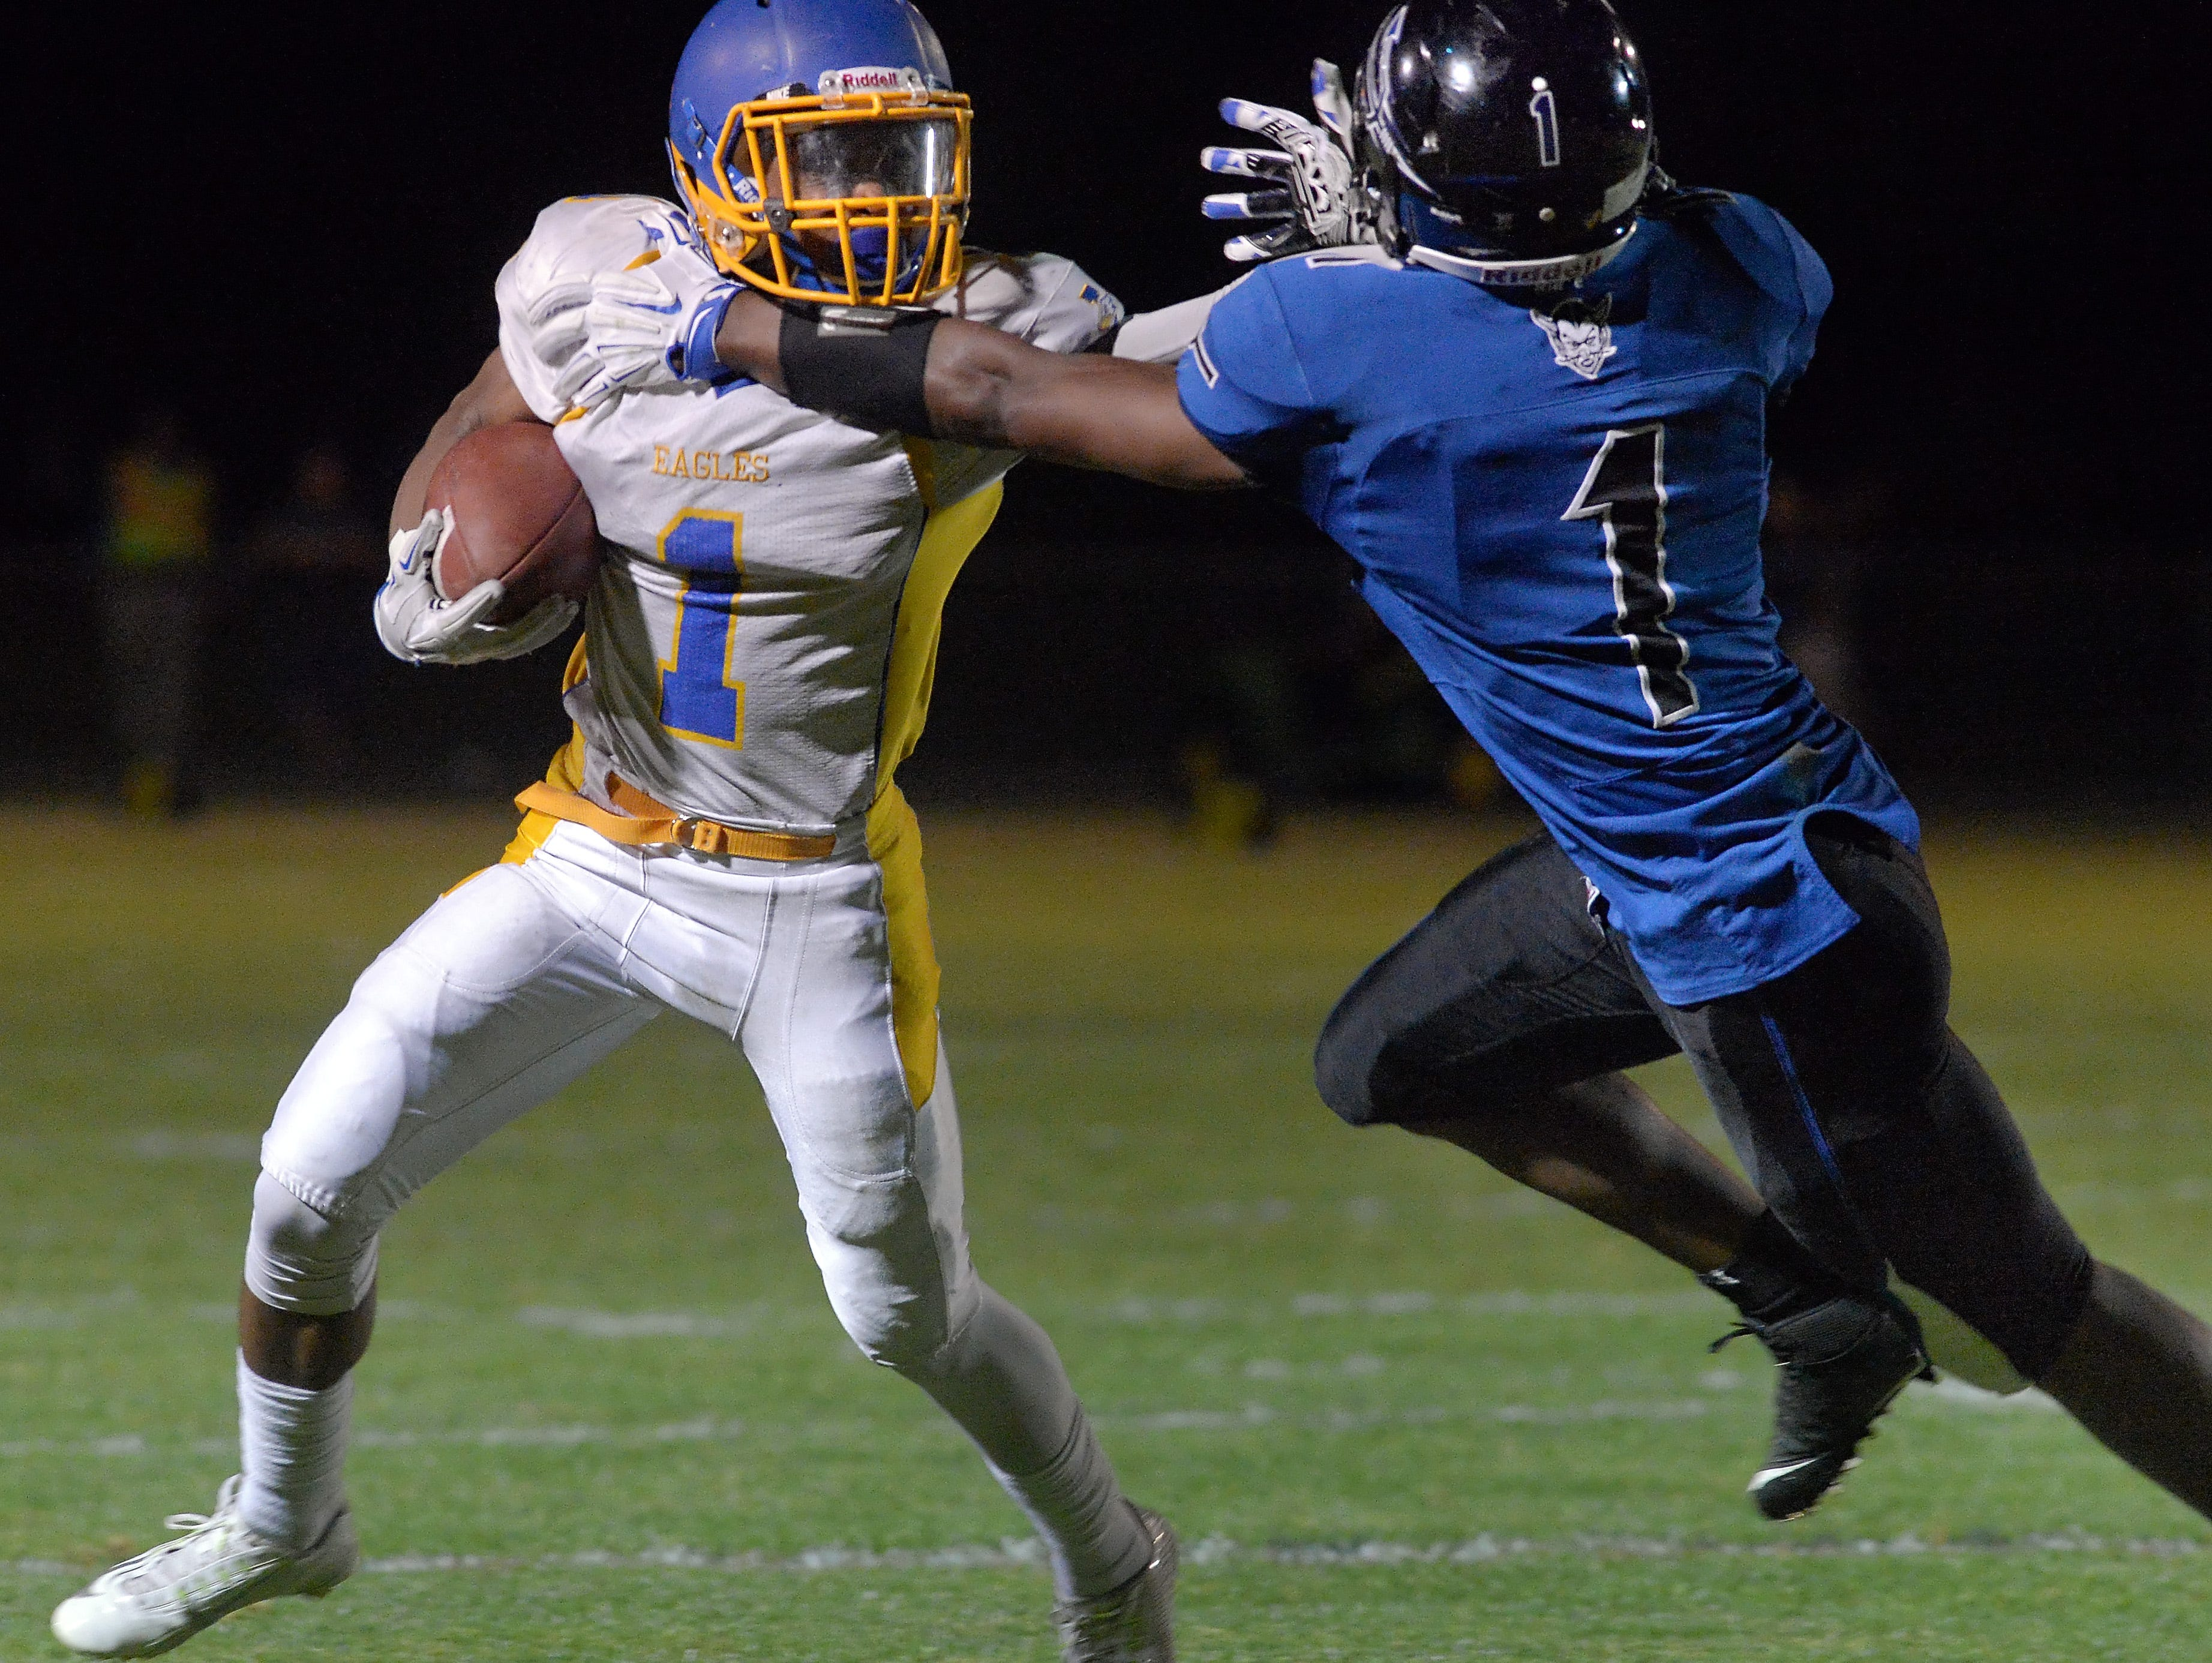 Irondequoit's Fooquan Peace, left, stiff arms Brockport's Cory Gross during a game at Brockport High School on Friday.